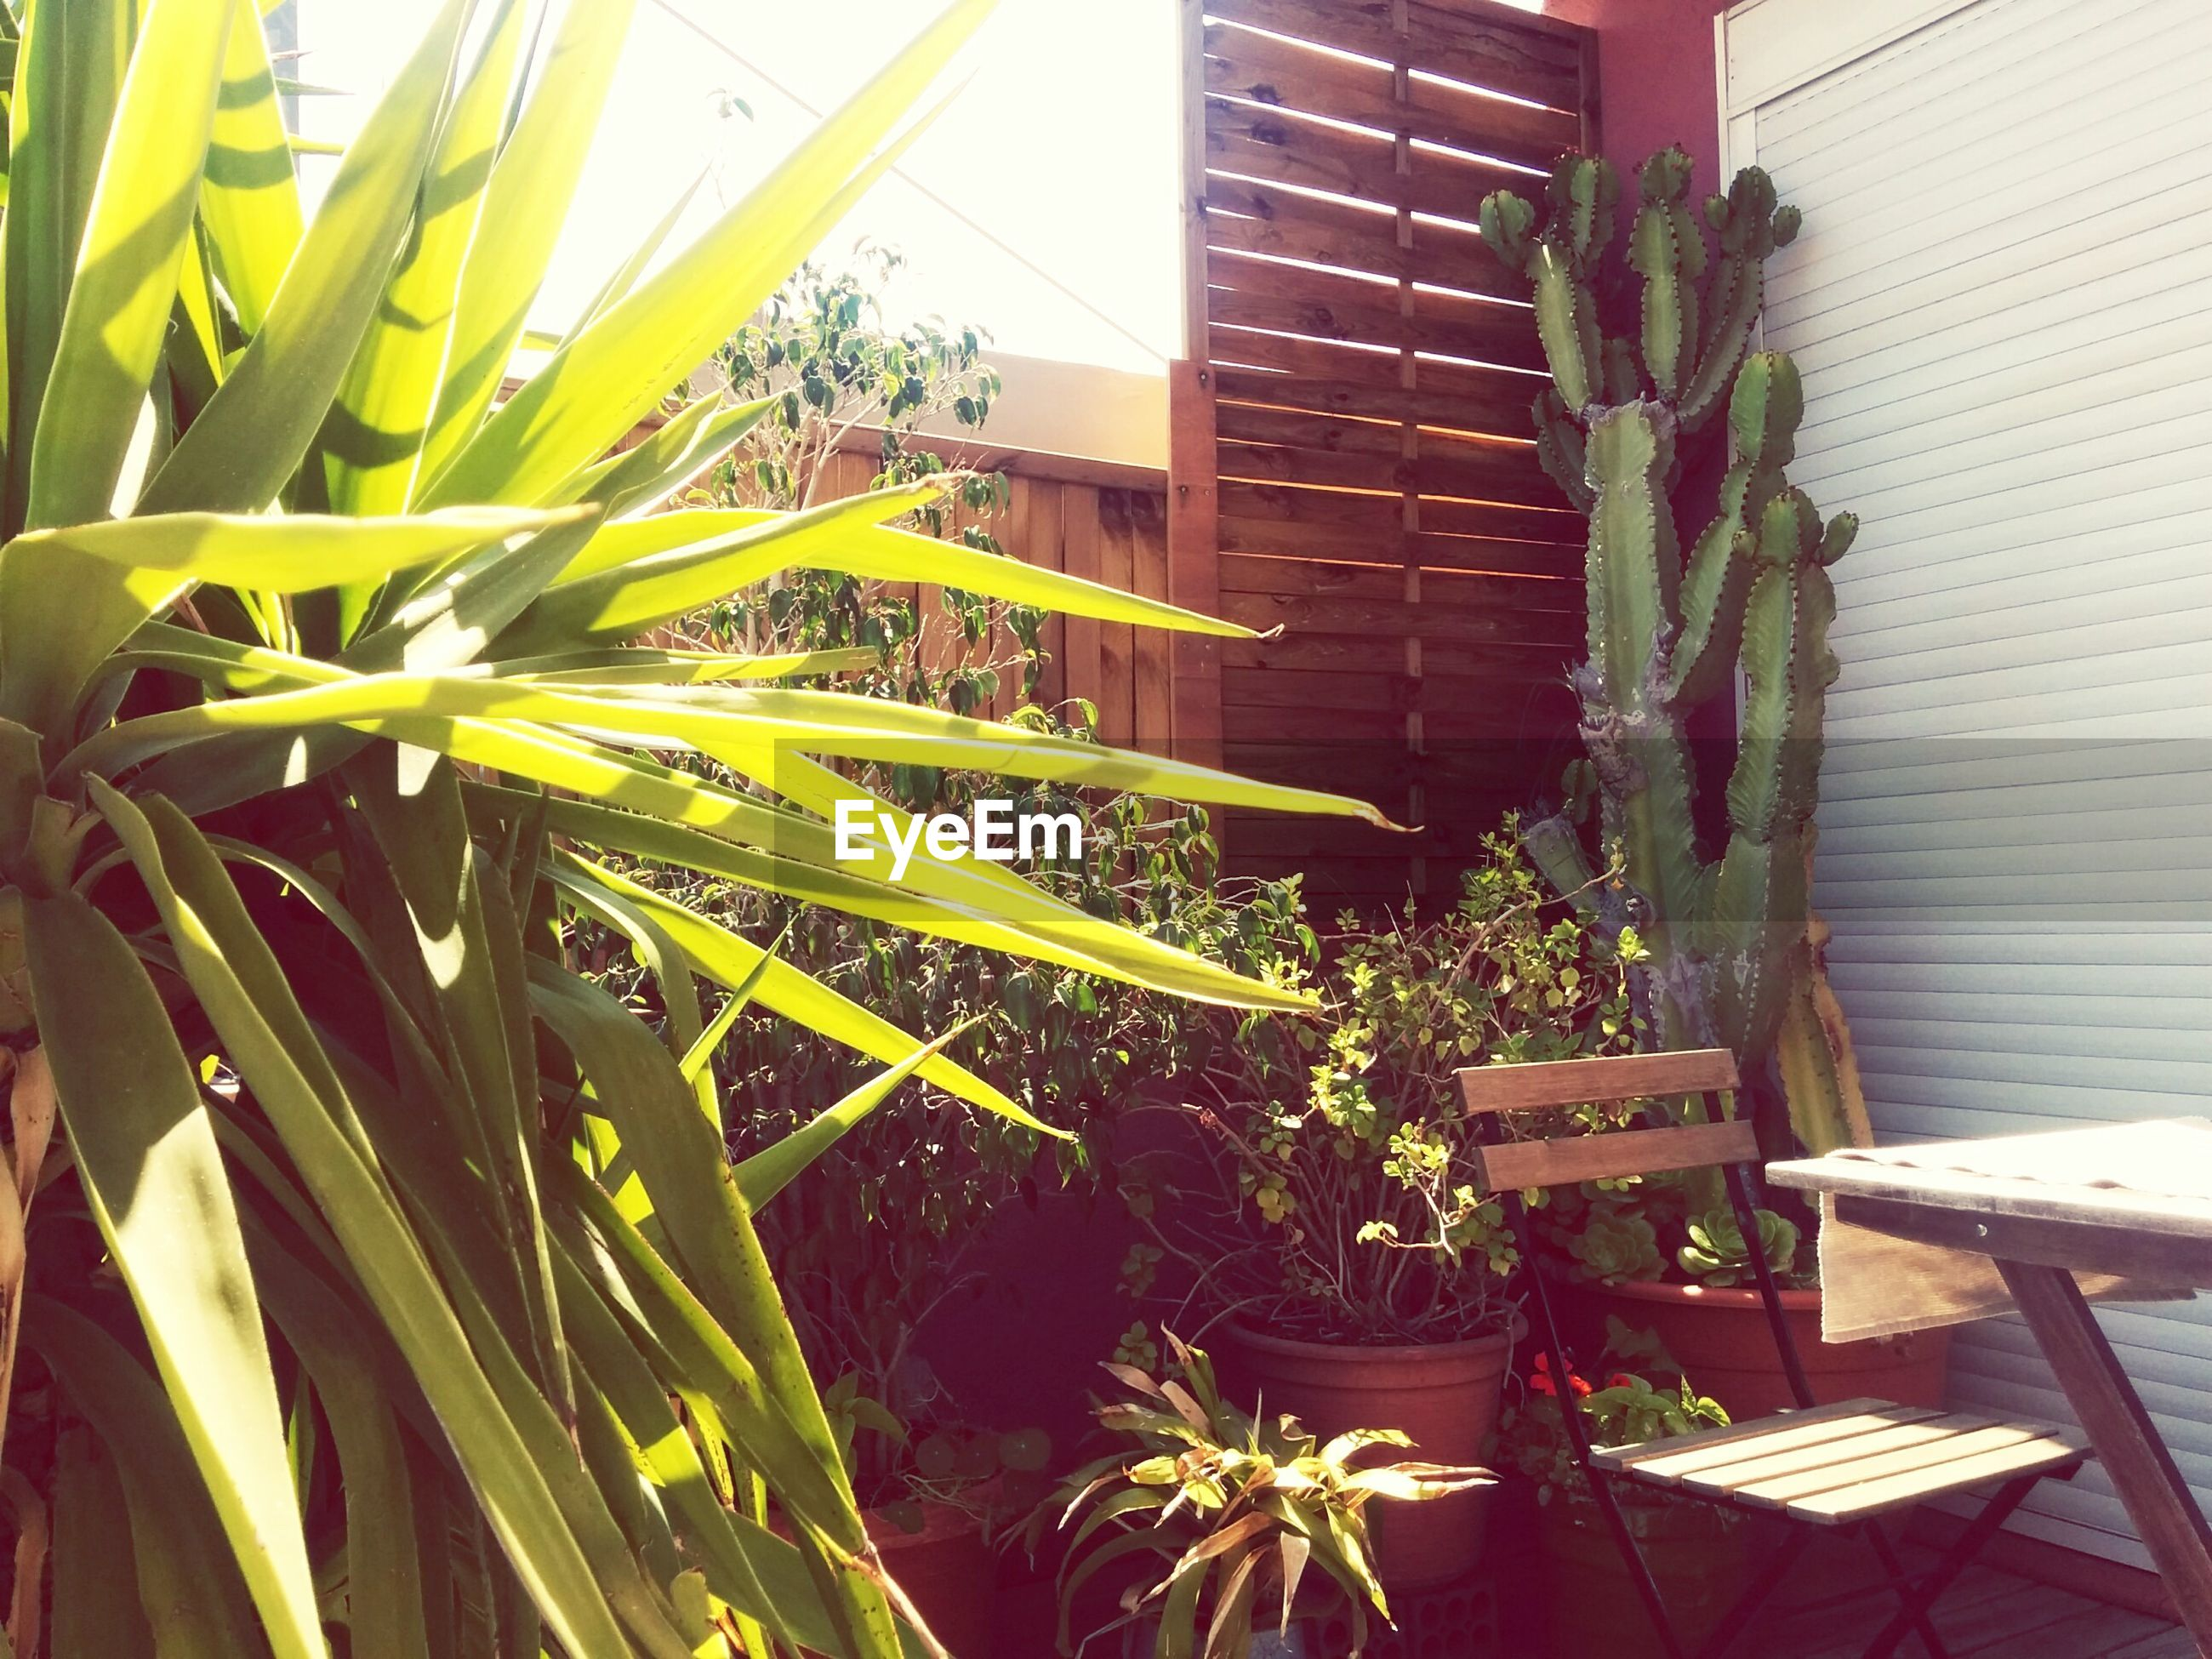 Potted plants by table and chair during sunny day